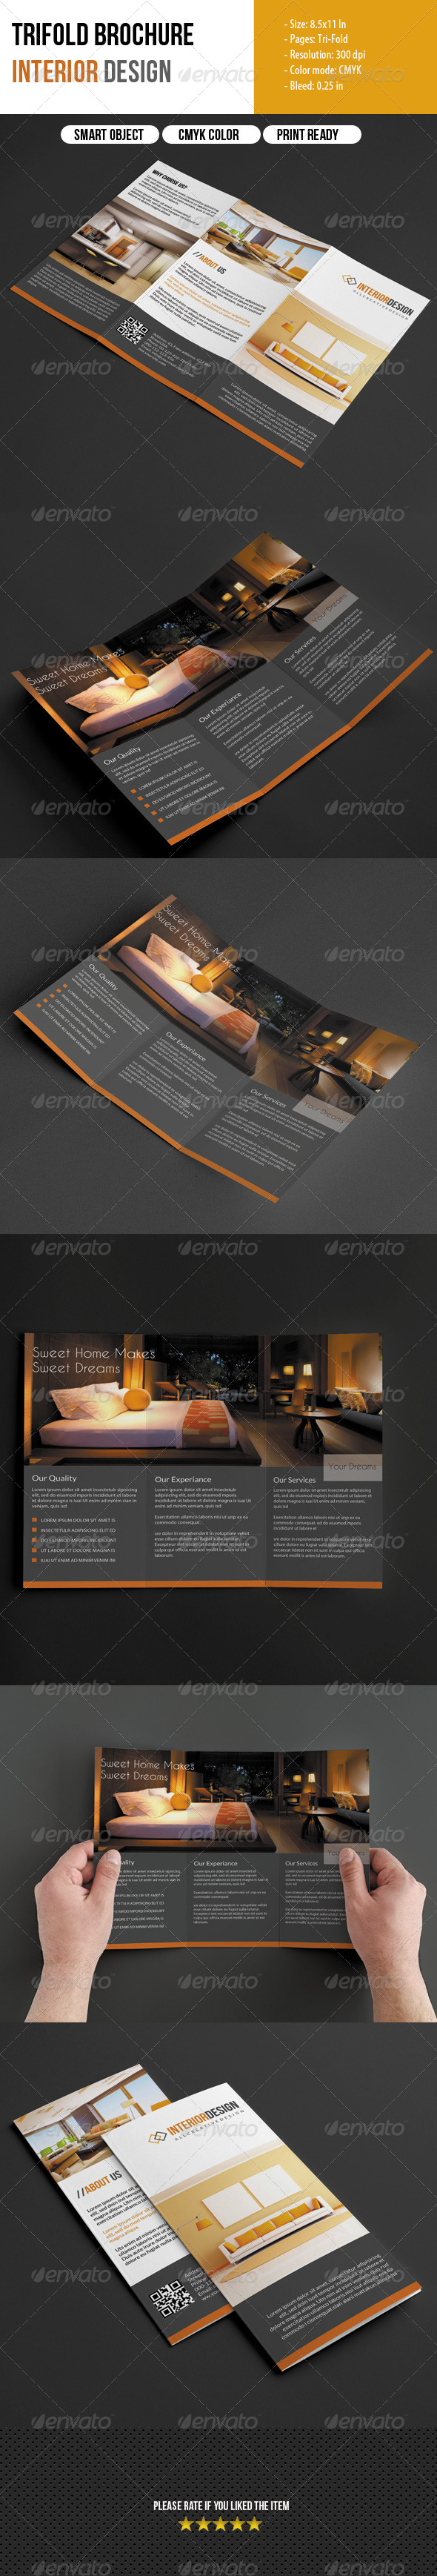 GraphicRiver Trifold Brochure for Interior Design 6146541